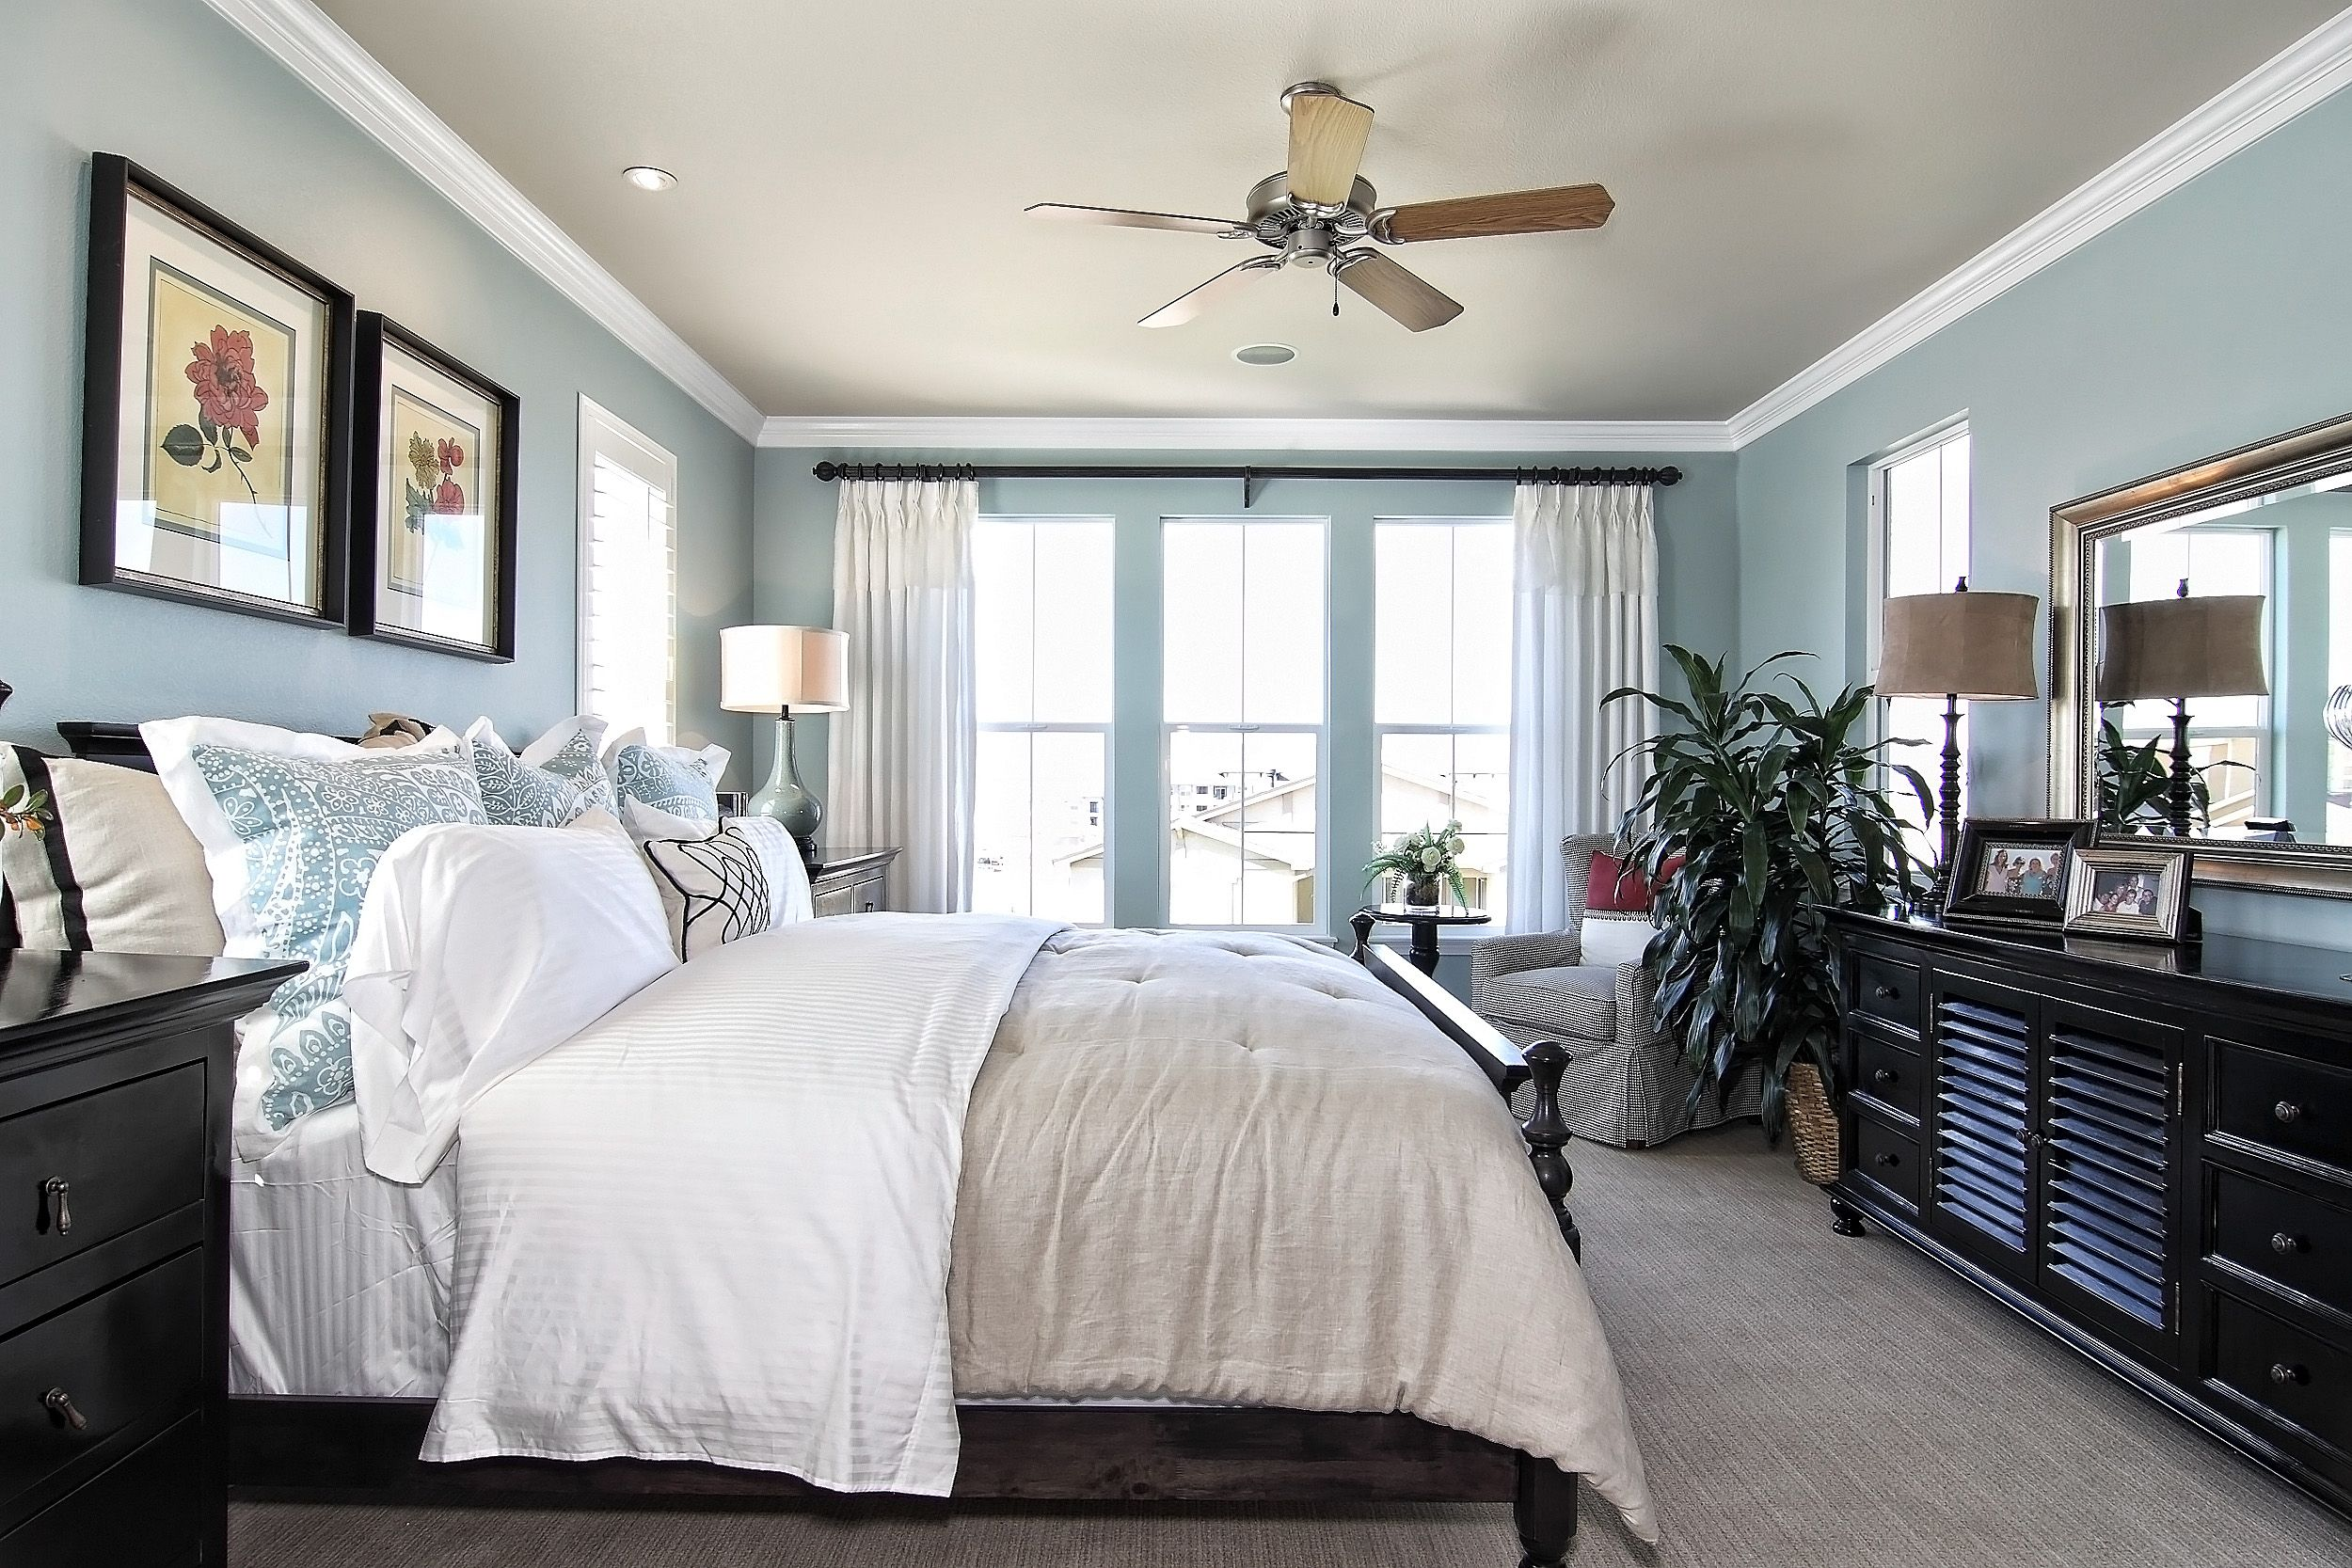 light blue and white bedroom ideas black bedroom ideas inspiration for master bedroom 20657